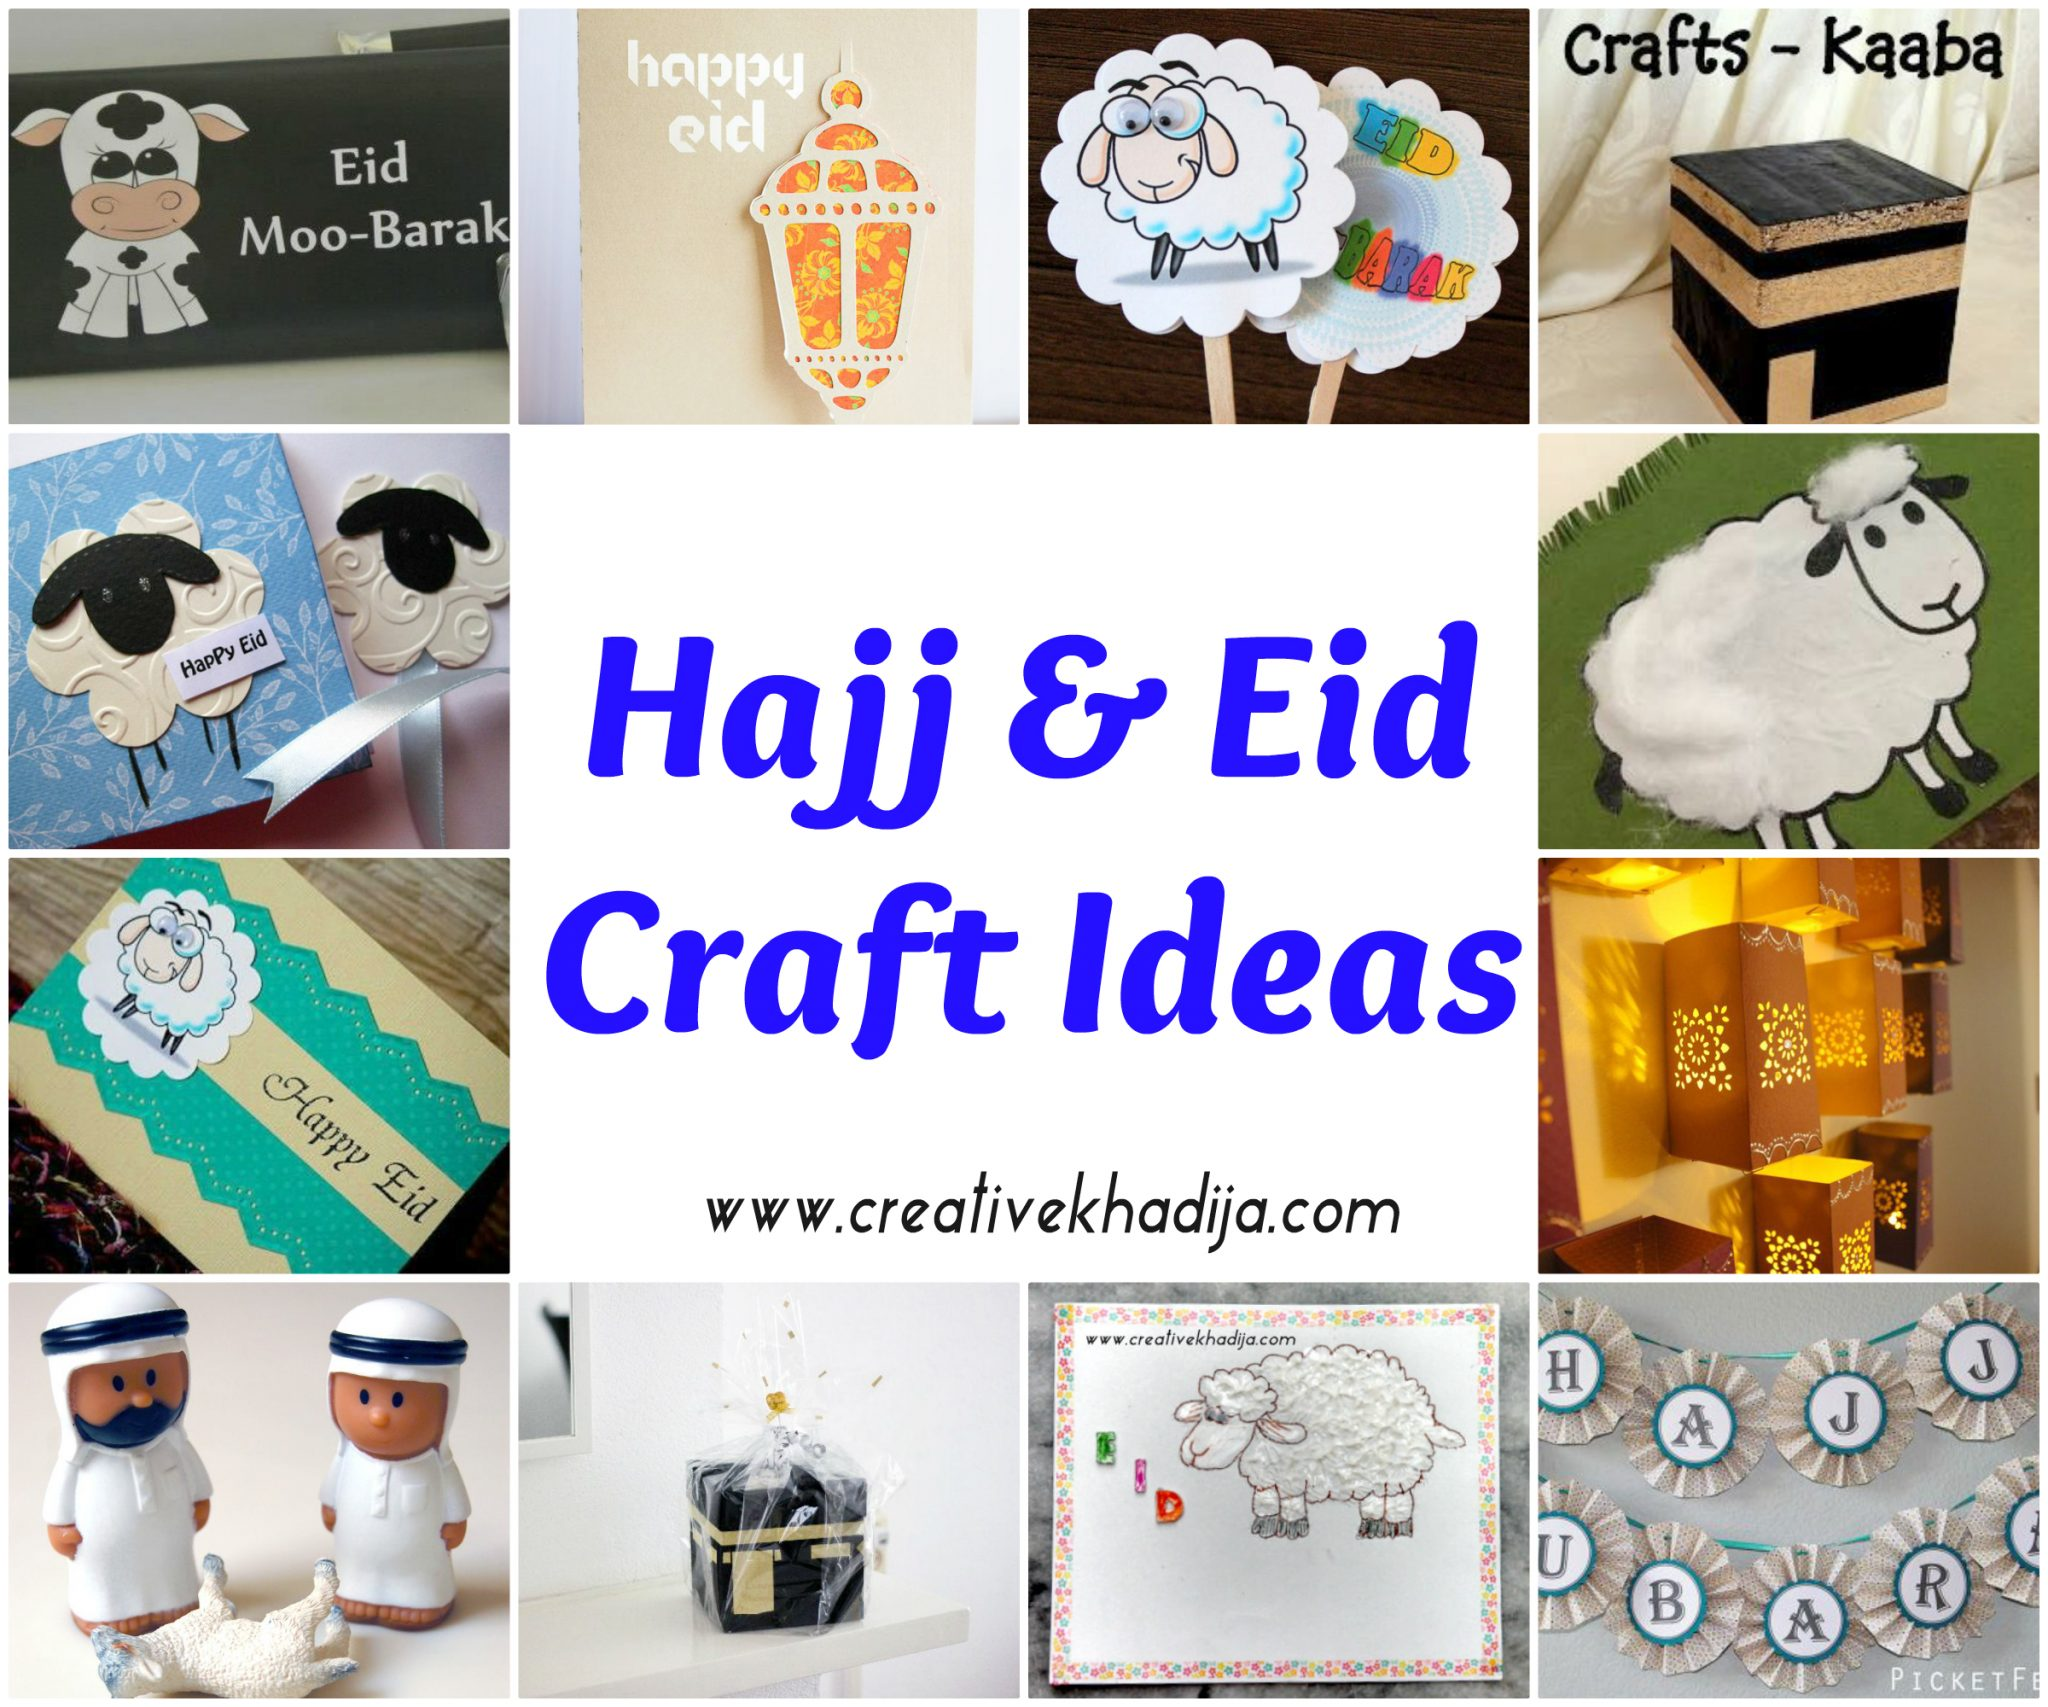 hajj-eid-al-adha-crafts-ideas-creations